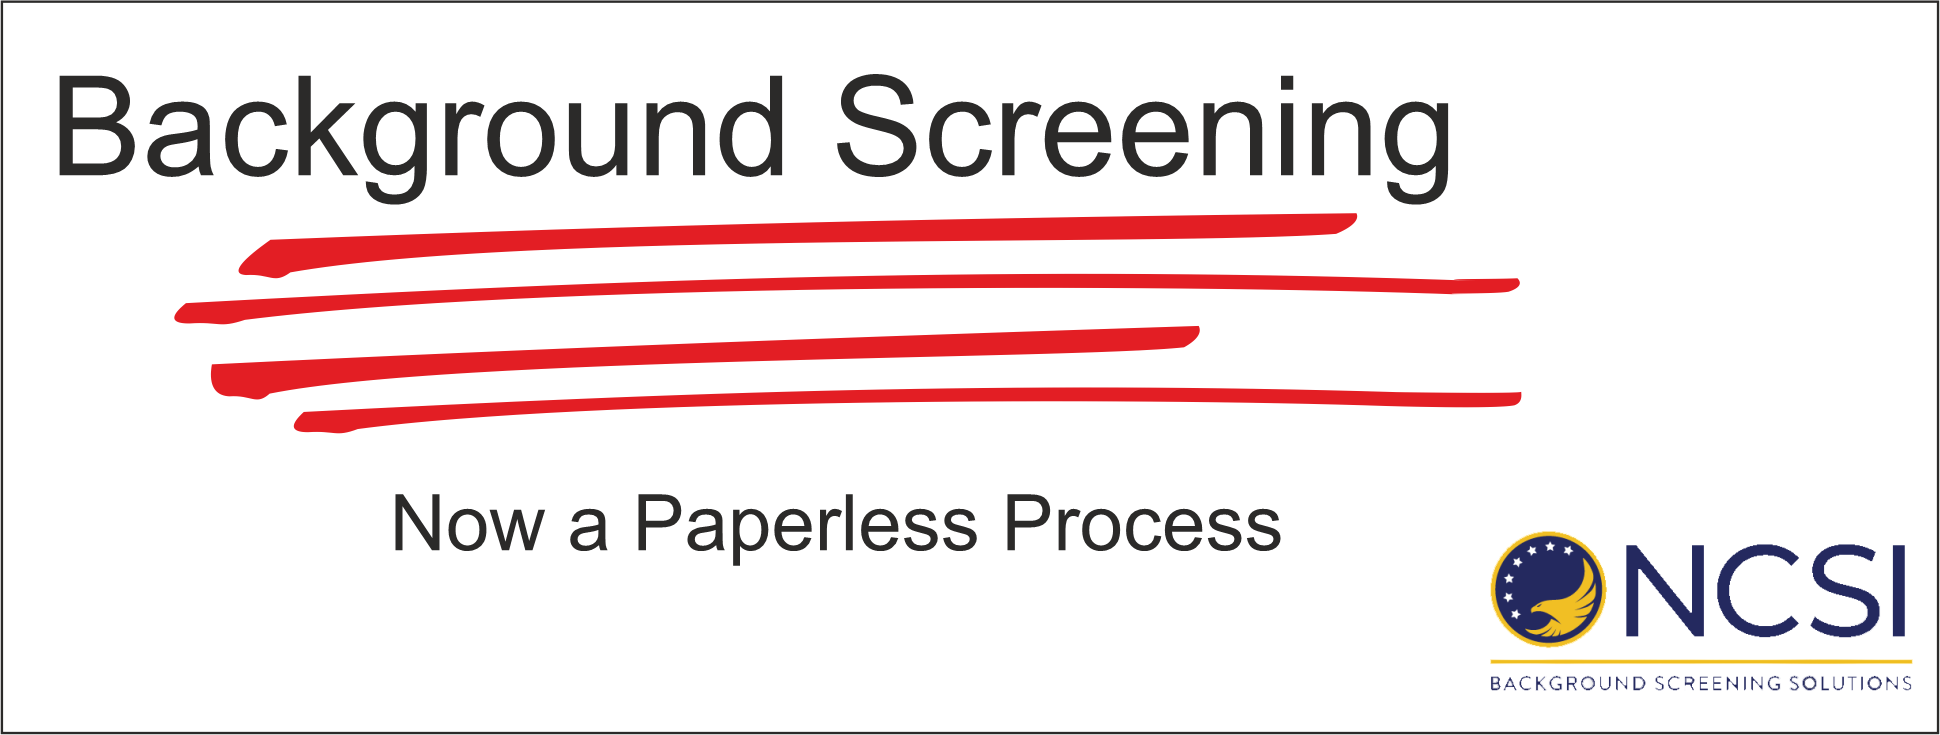 Background Screening now Paperless -- Read more